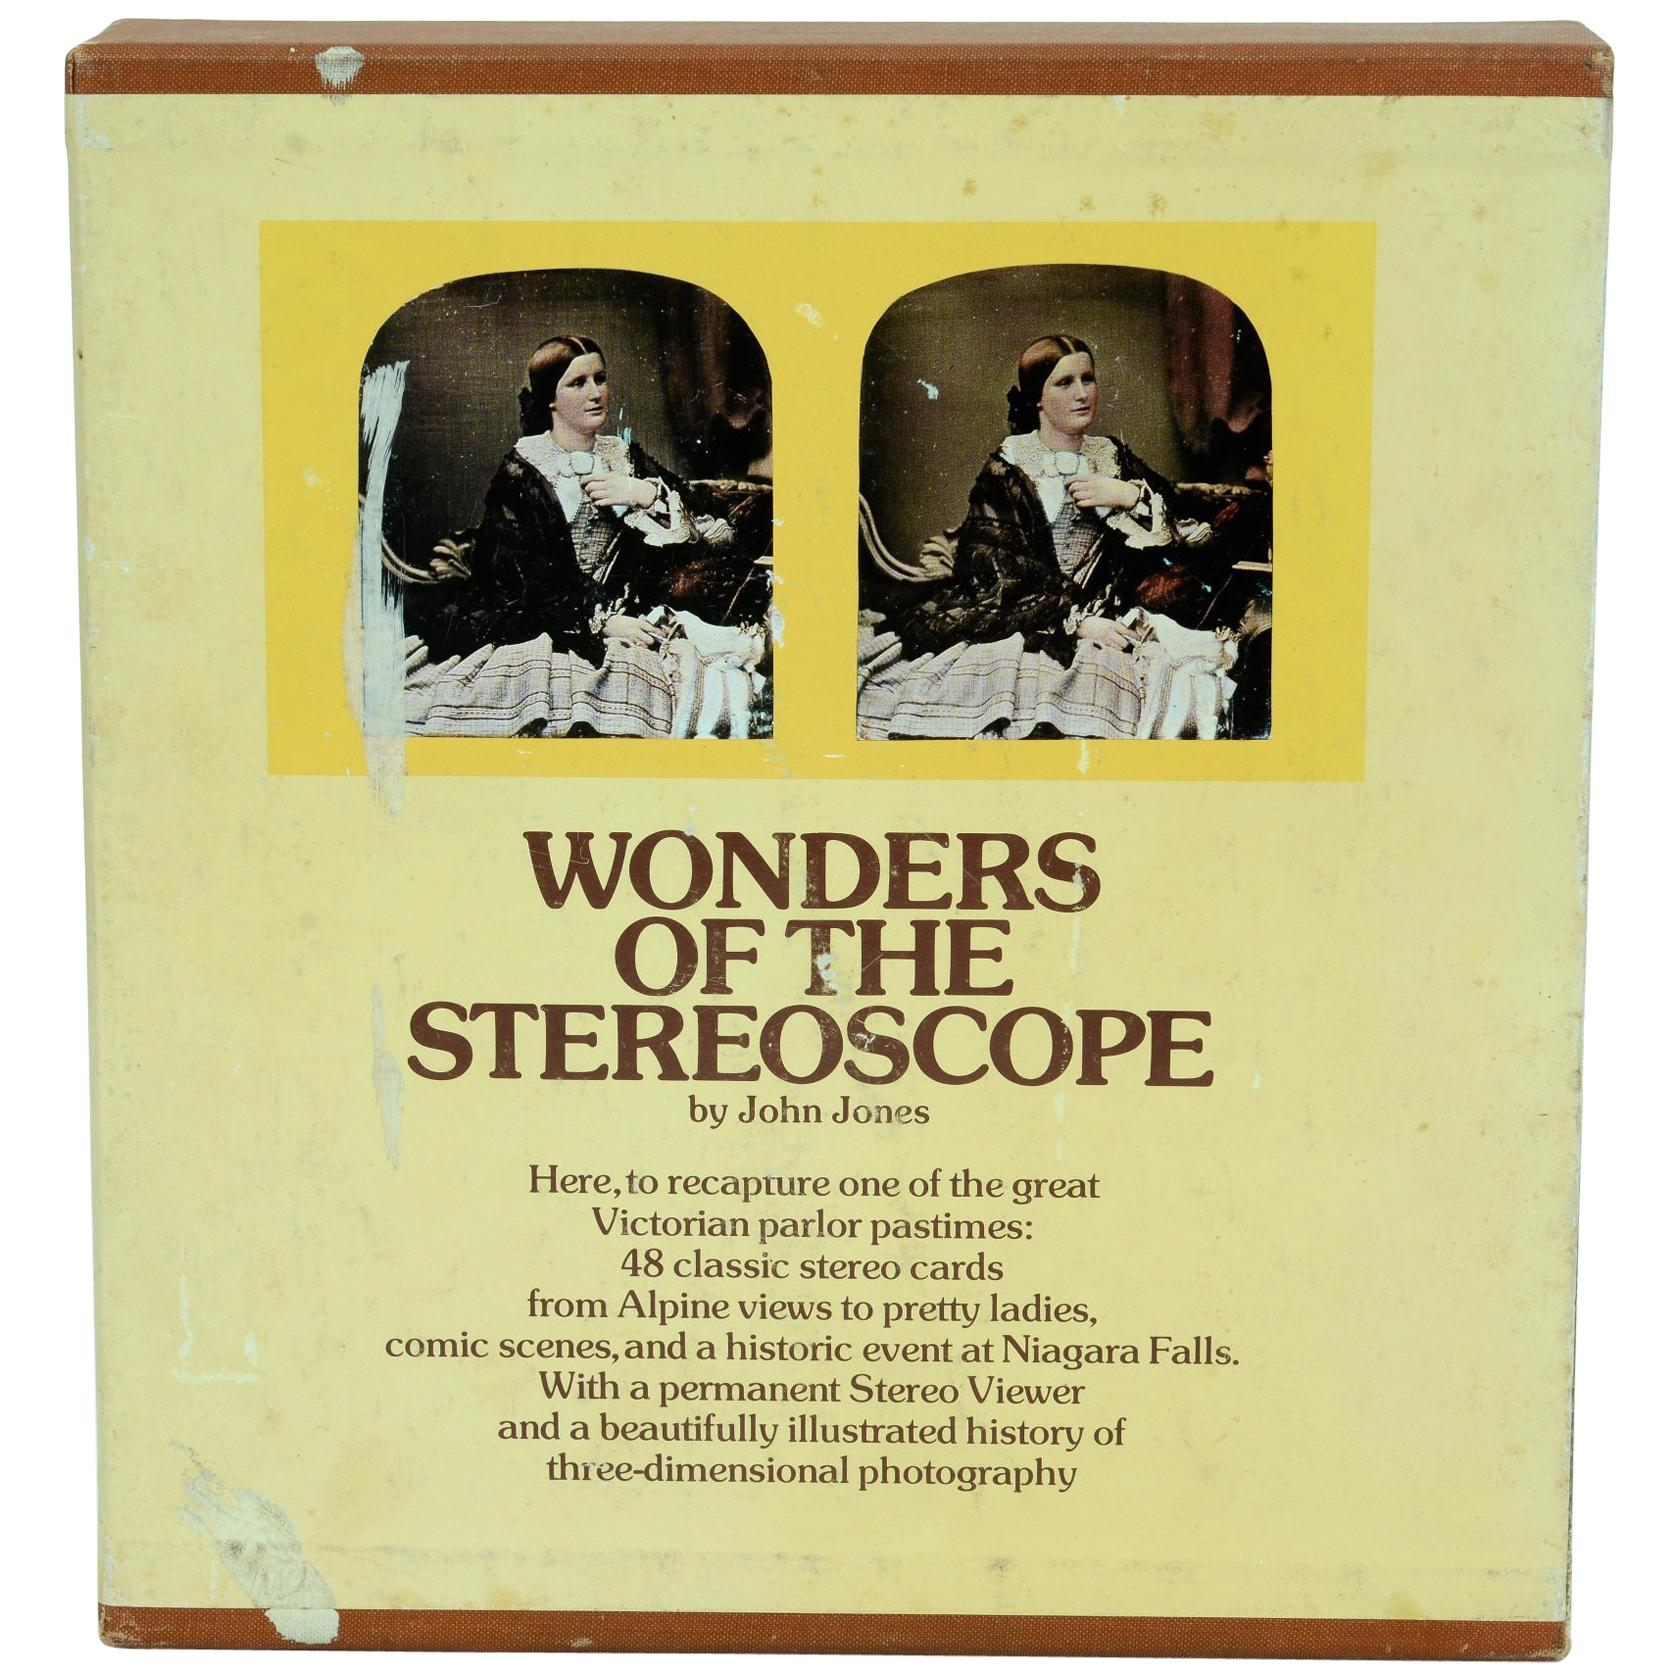 Wonders of the Stereoscope, by John Jones, 1st Edition